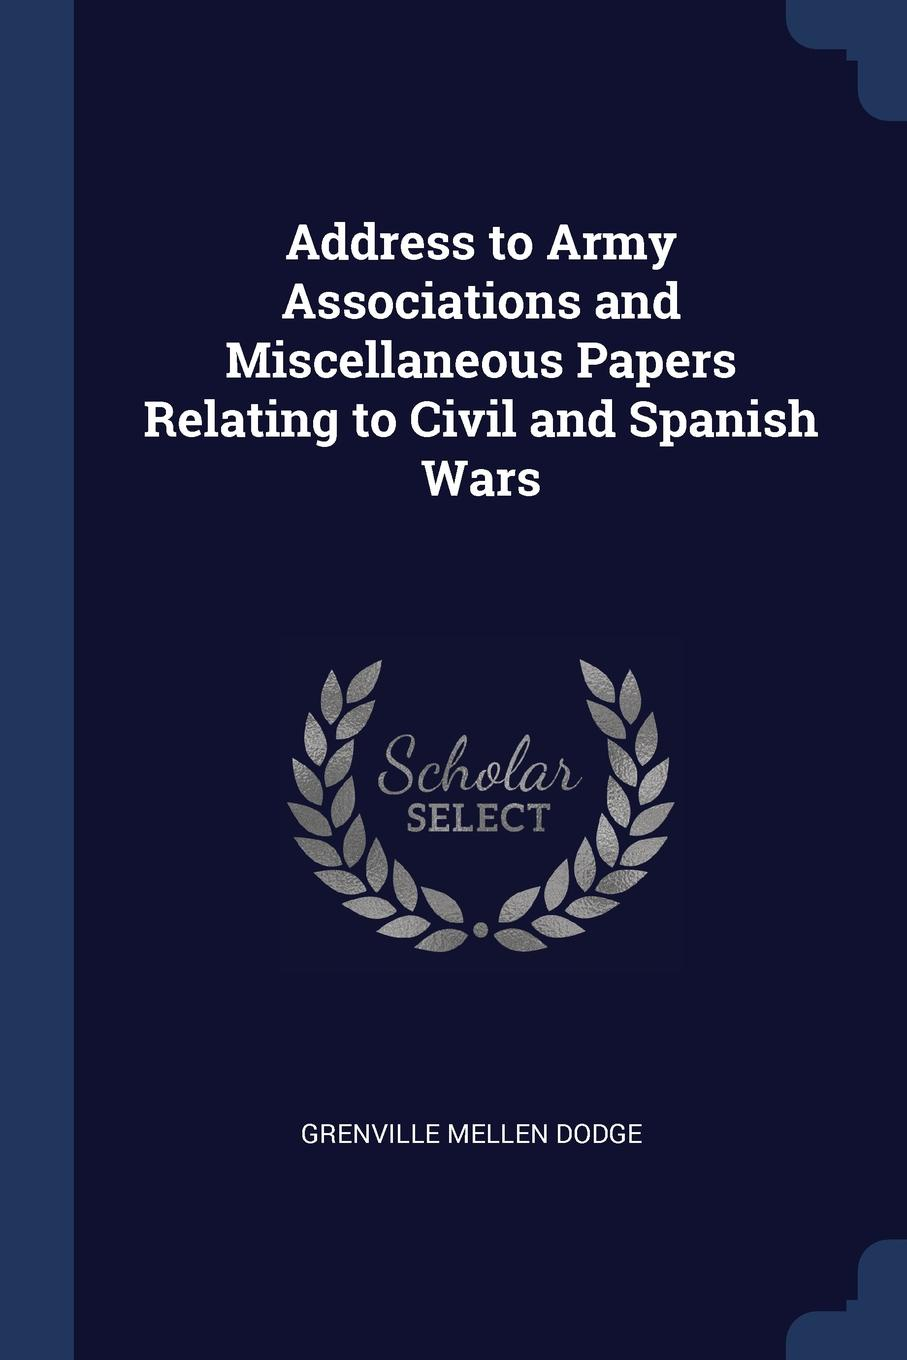 Address to Army Associations and Miscellaneous Papers Relating to Civil and Spanish Wars